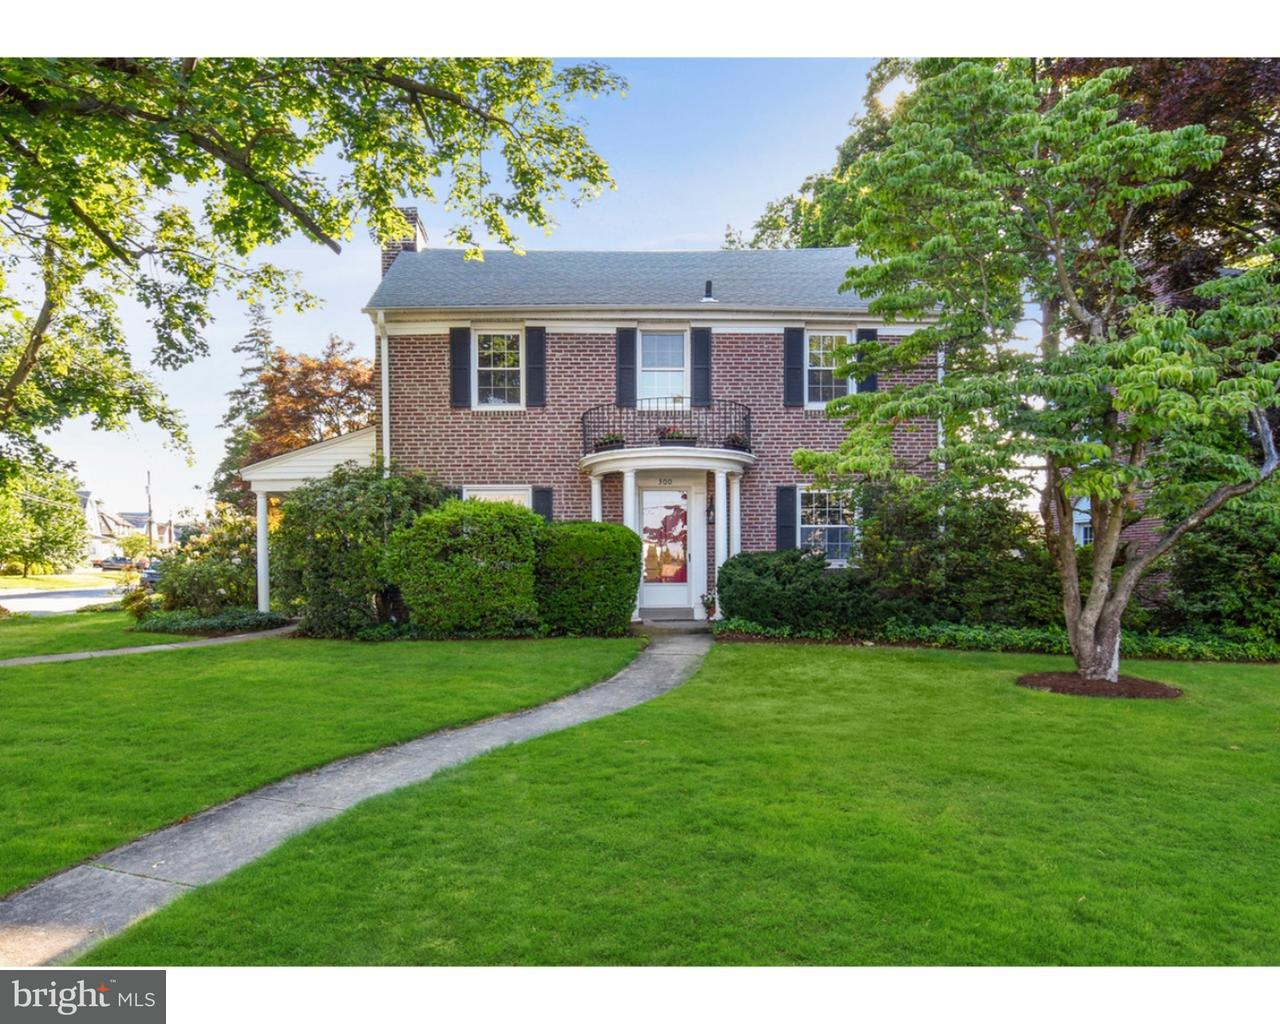 300 SHELBOURNE RD, HAVERTOWN - Listed at $489,000, HAVERTOWN